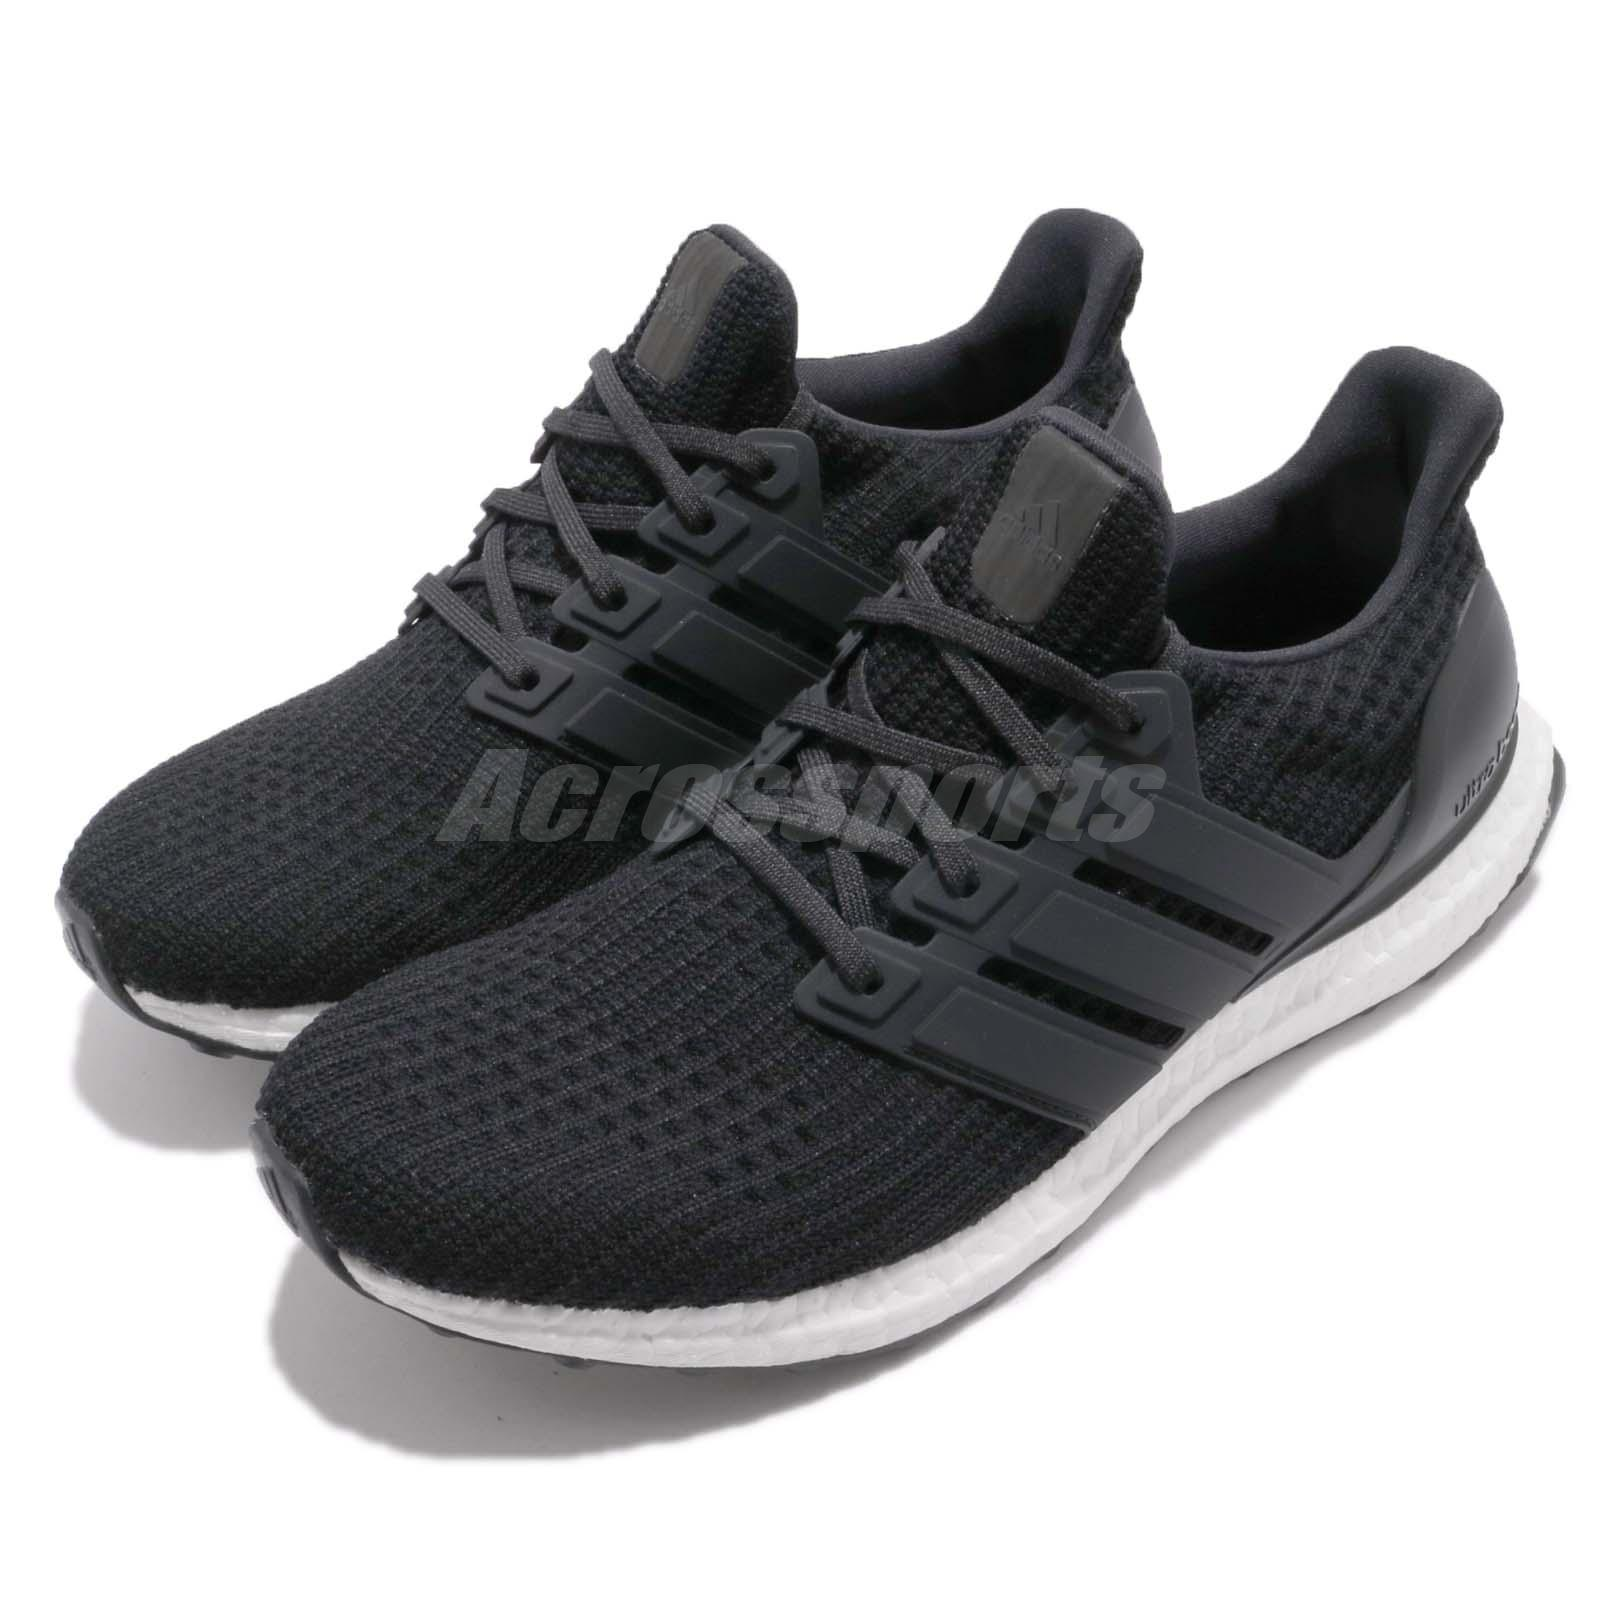 97e2b1989 Details about adidas UltraBOOST 4.0 Core Black Cloud White Mens Running  Shoes Sneakers BB6166